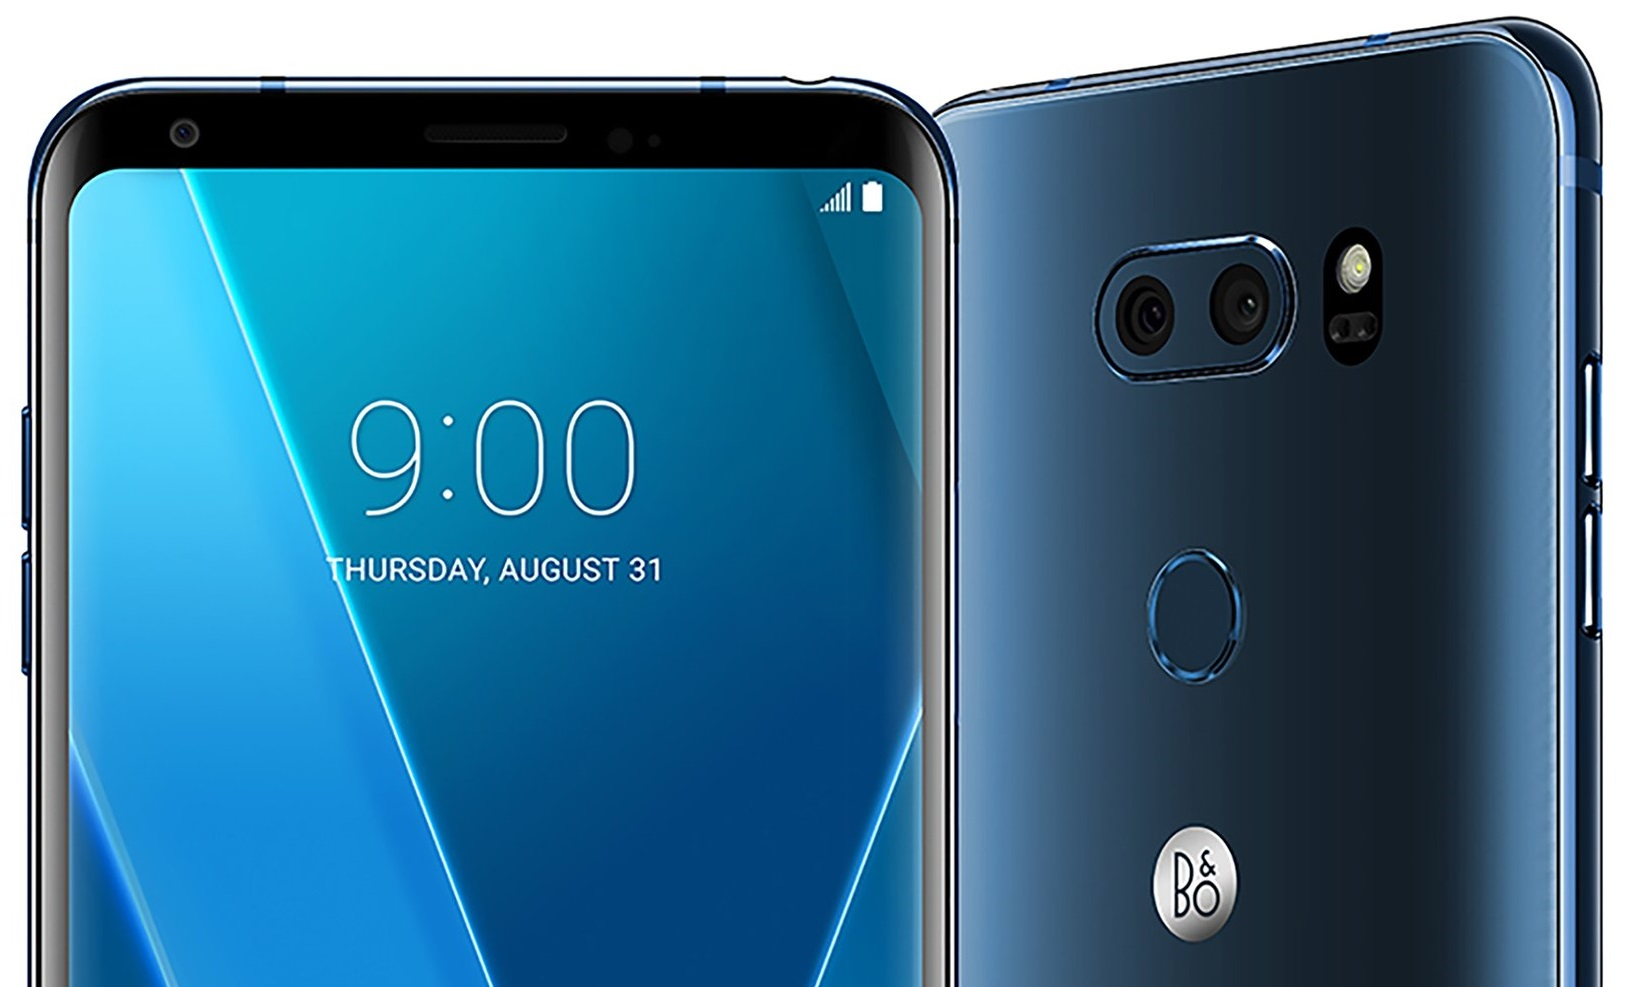 The latest LG flagship V30 is definitely bigger and better